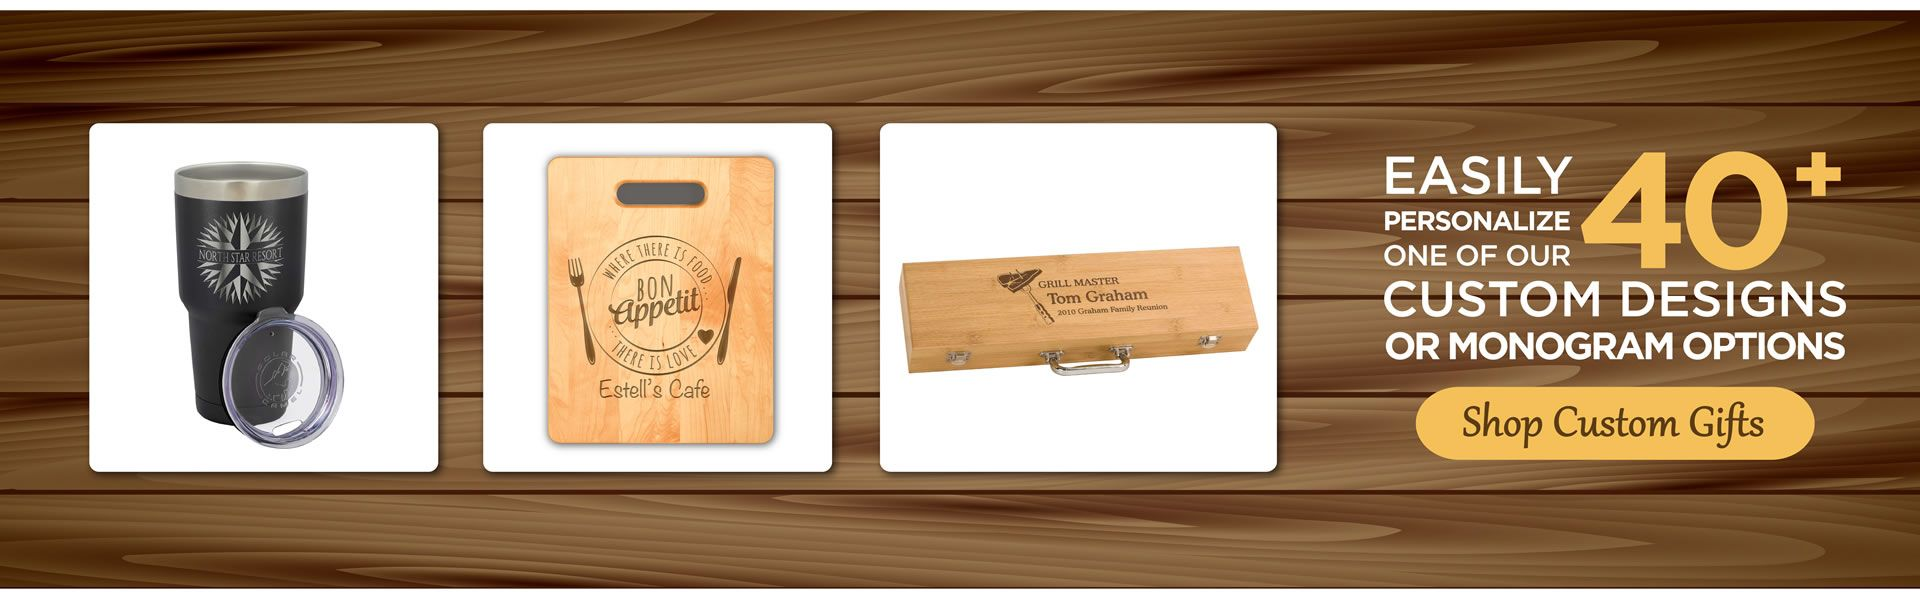 personalized grilling gifts